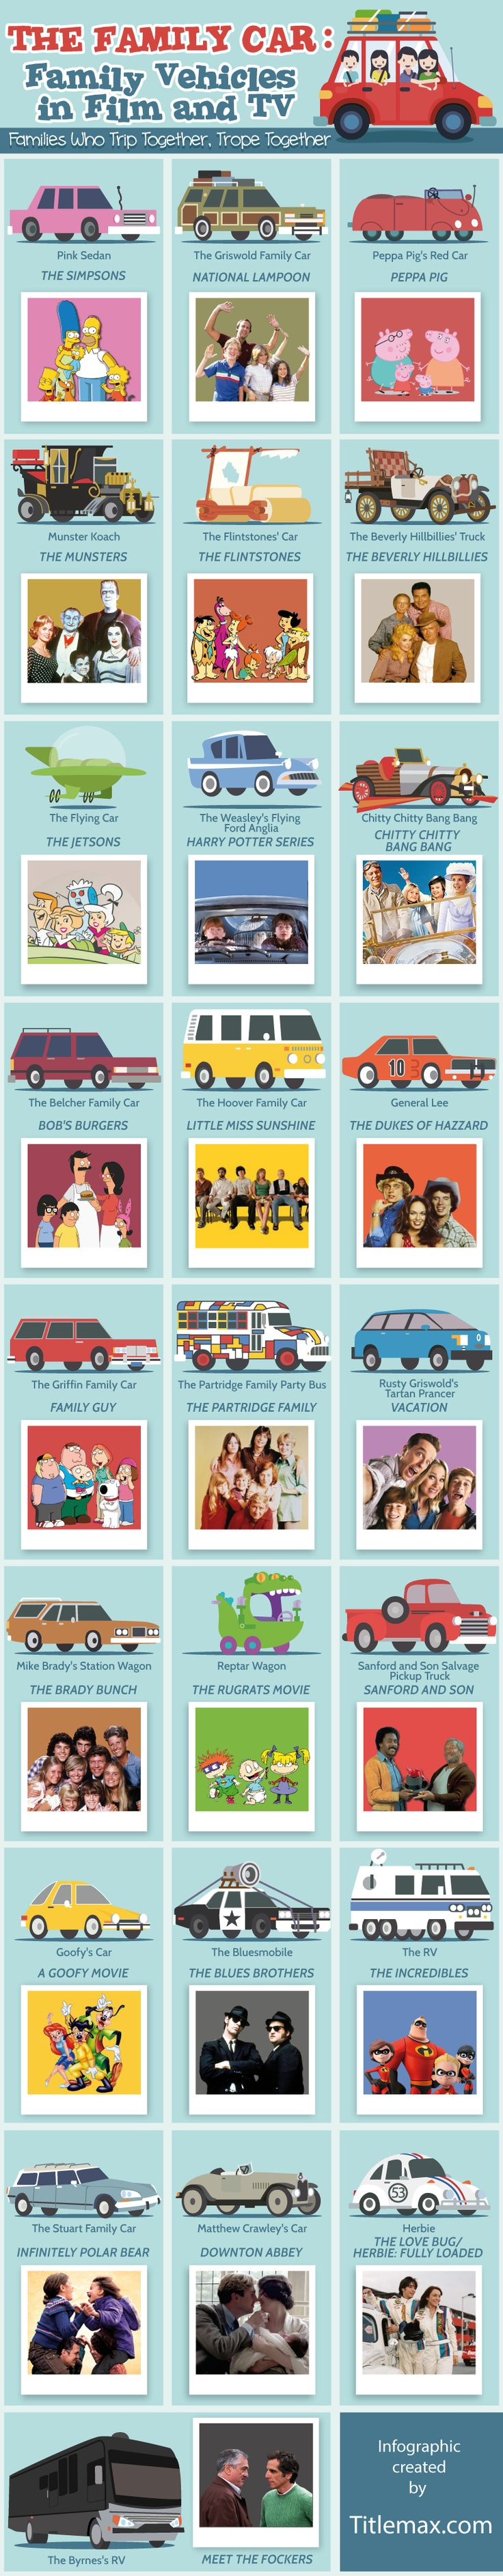 The Family Car: Family Vehicles in Film and TV #Infographic #Entertainment #Transportation